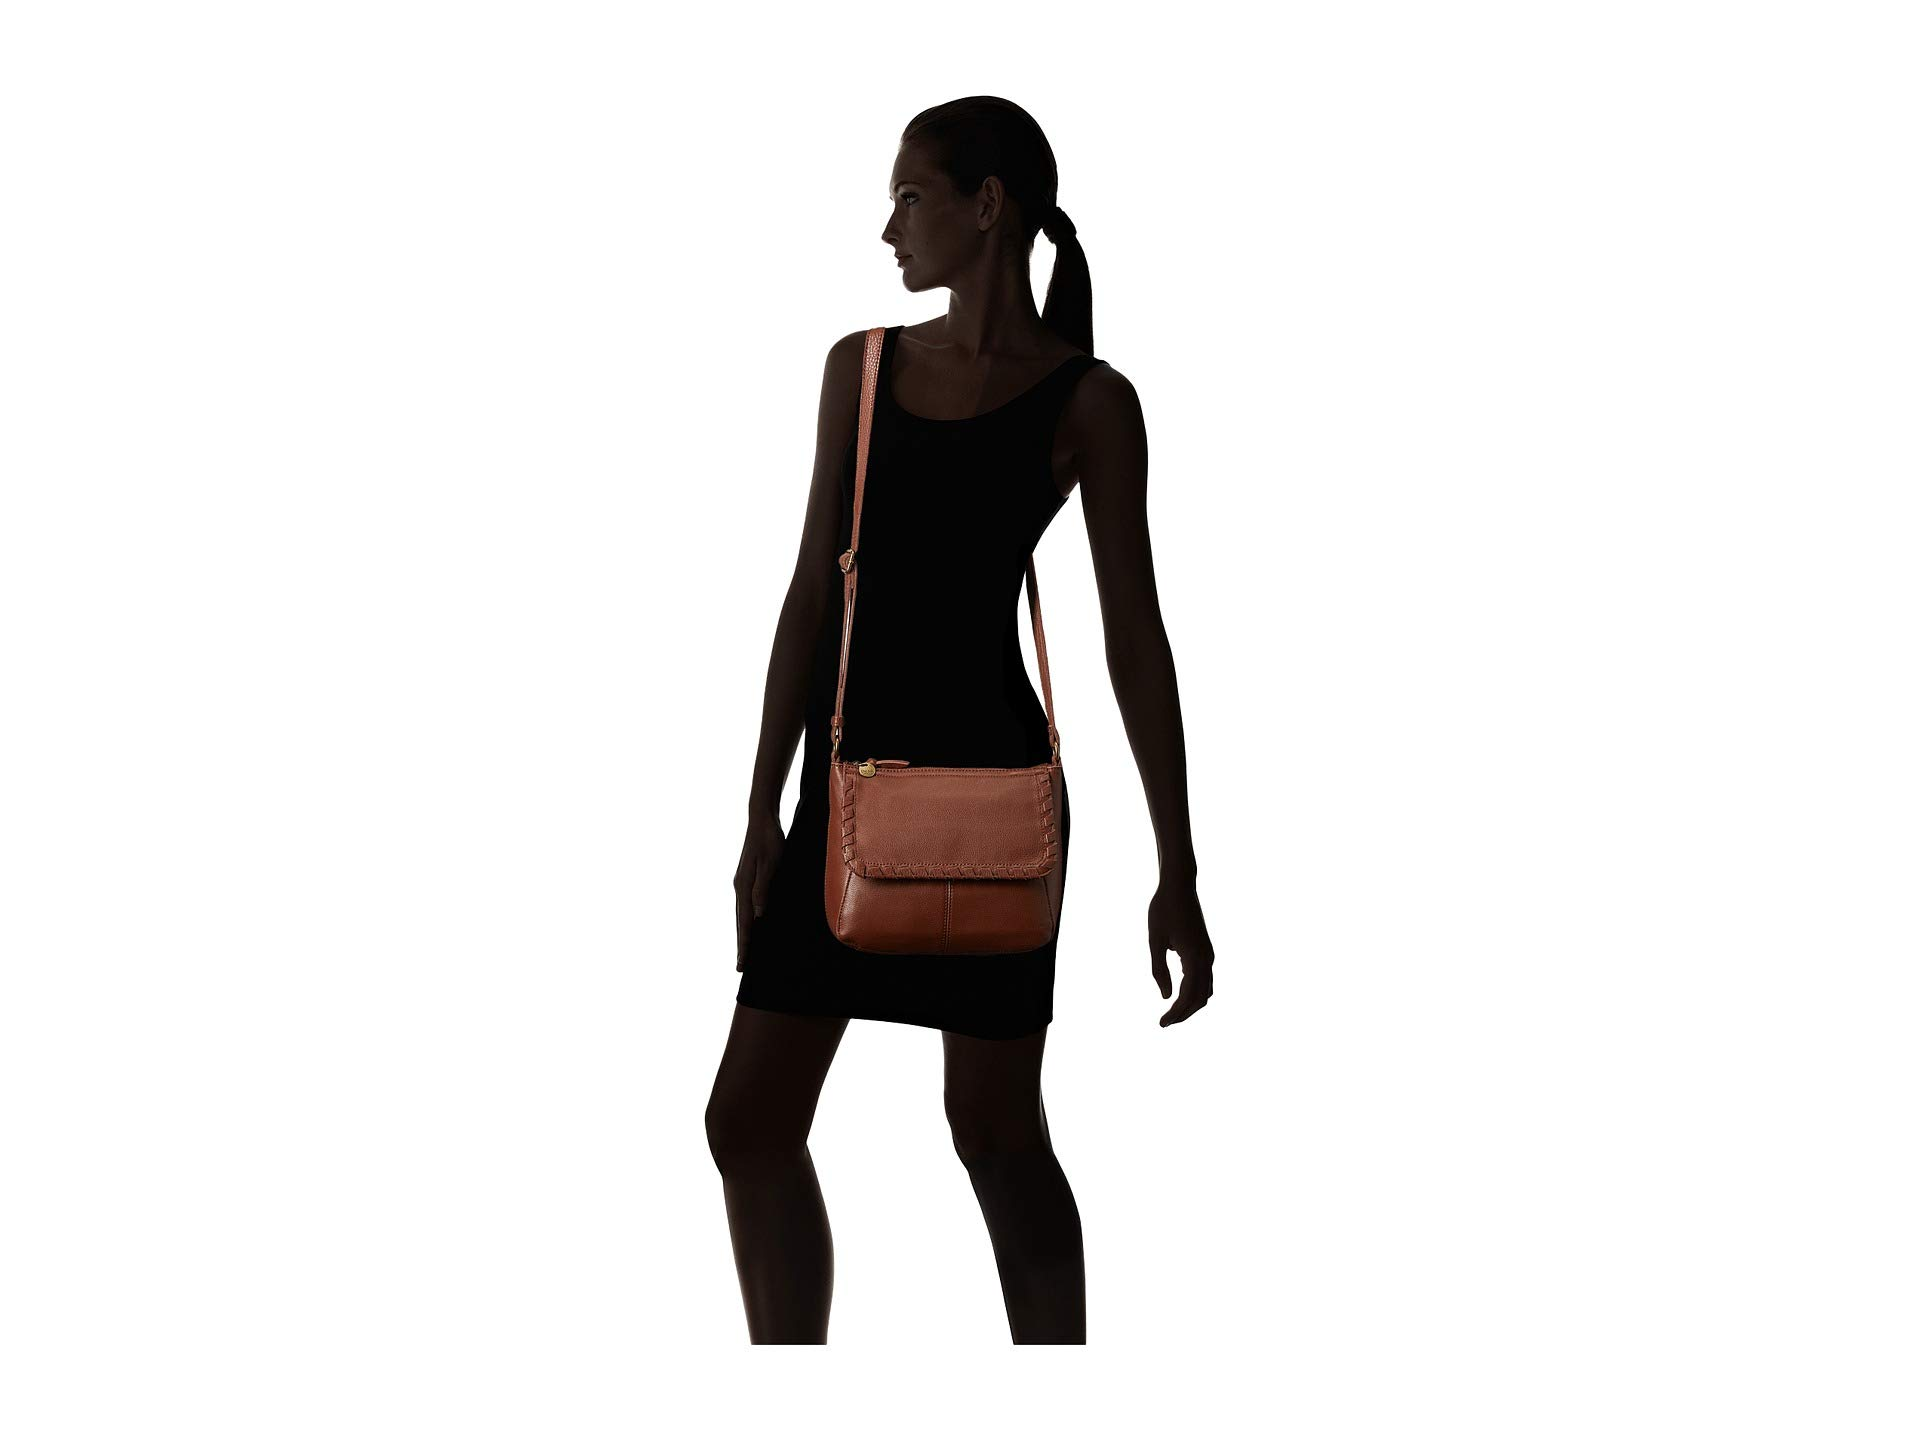 Collective Margarita Sak By Teak Flap The Crossbody wT4XqR5